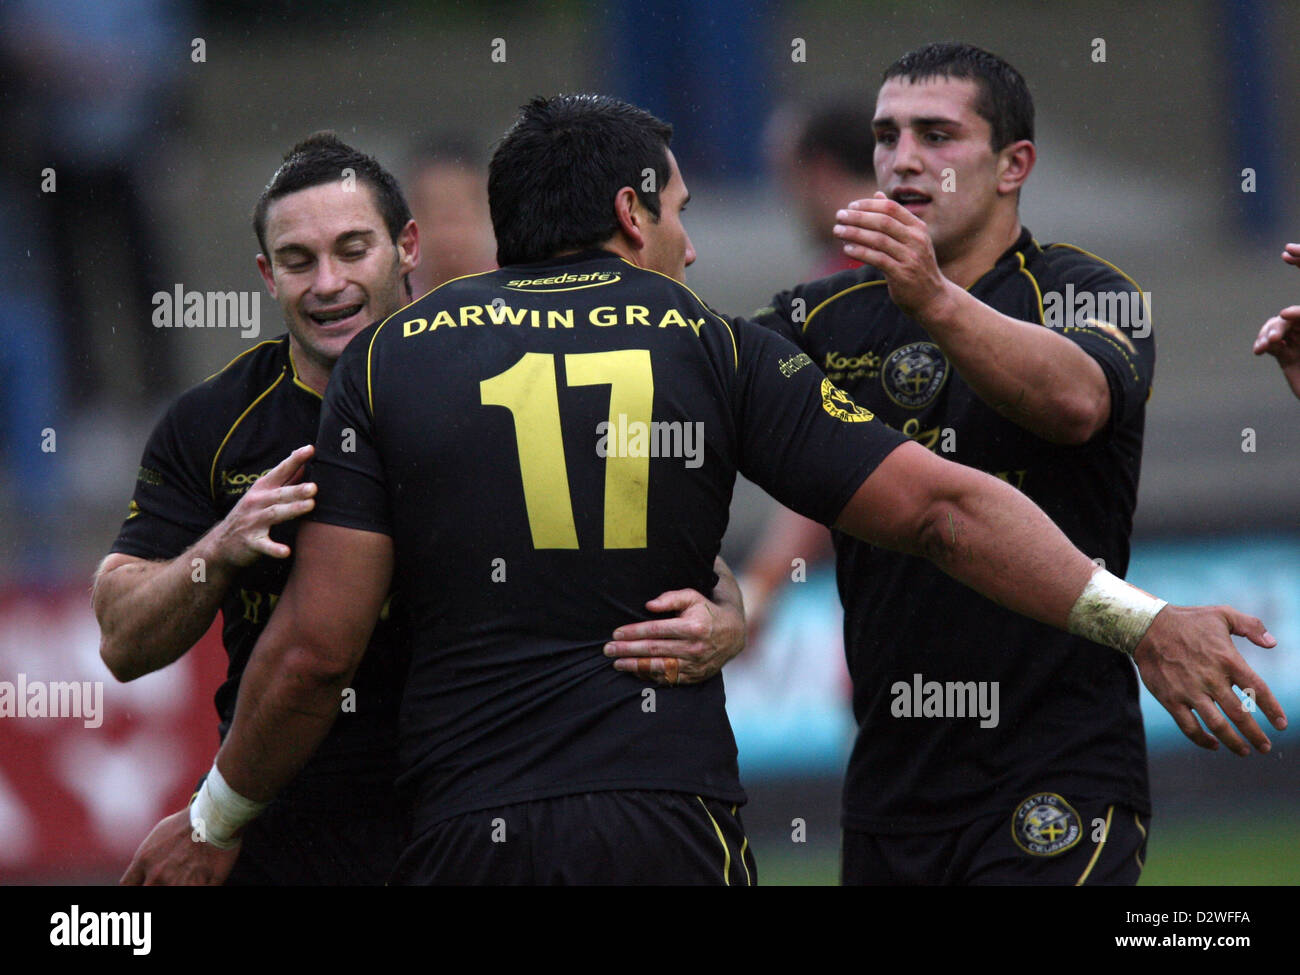 23.08.08. Celtic Crusaders v Salford City Reds Crusaders' David Tangata-Toa celebrates try. - Stock Image